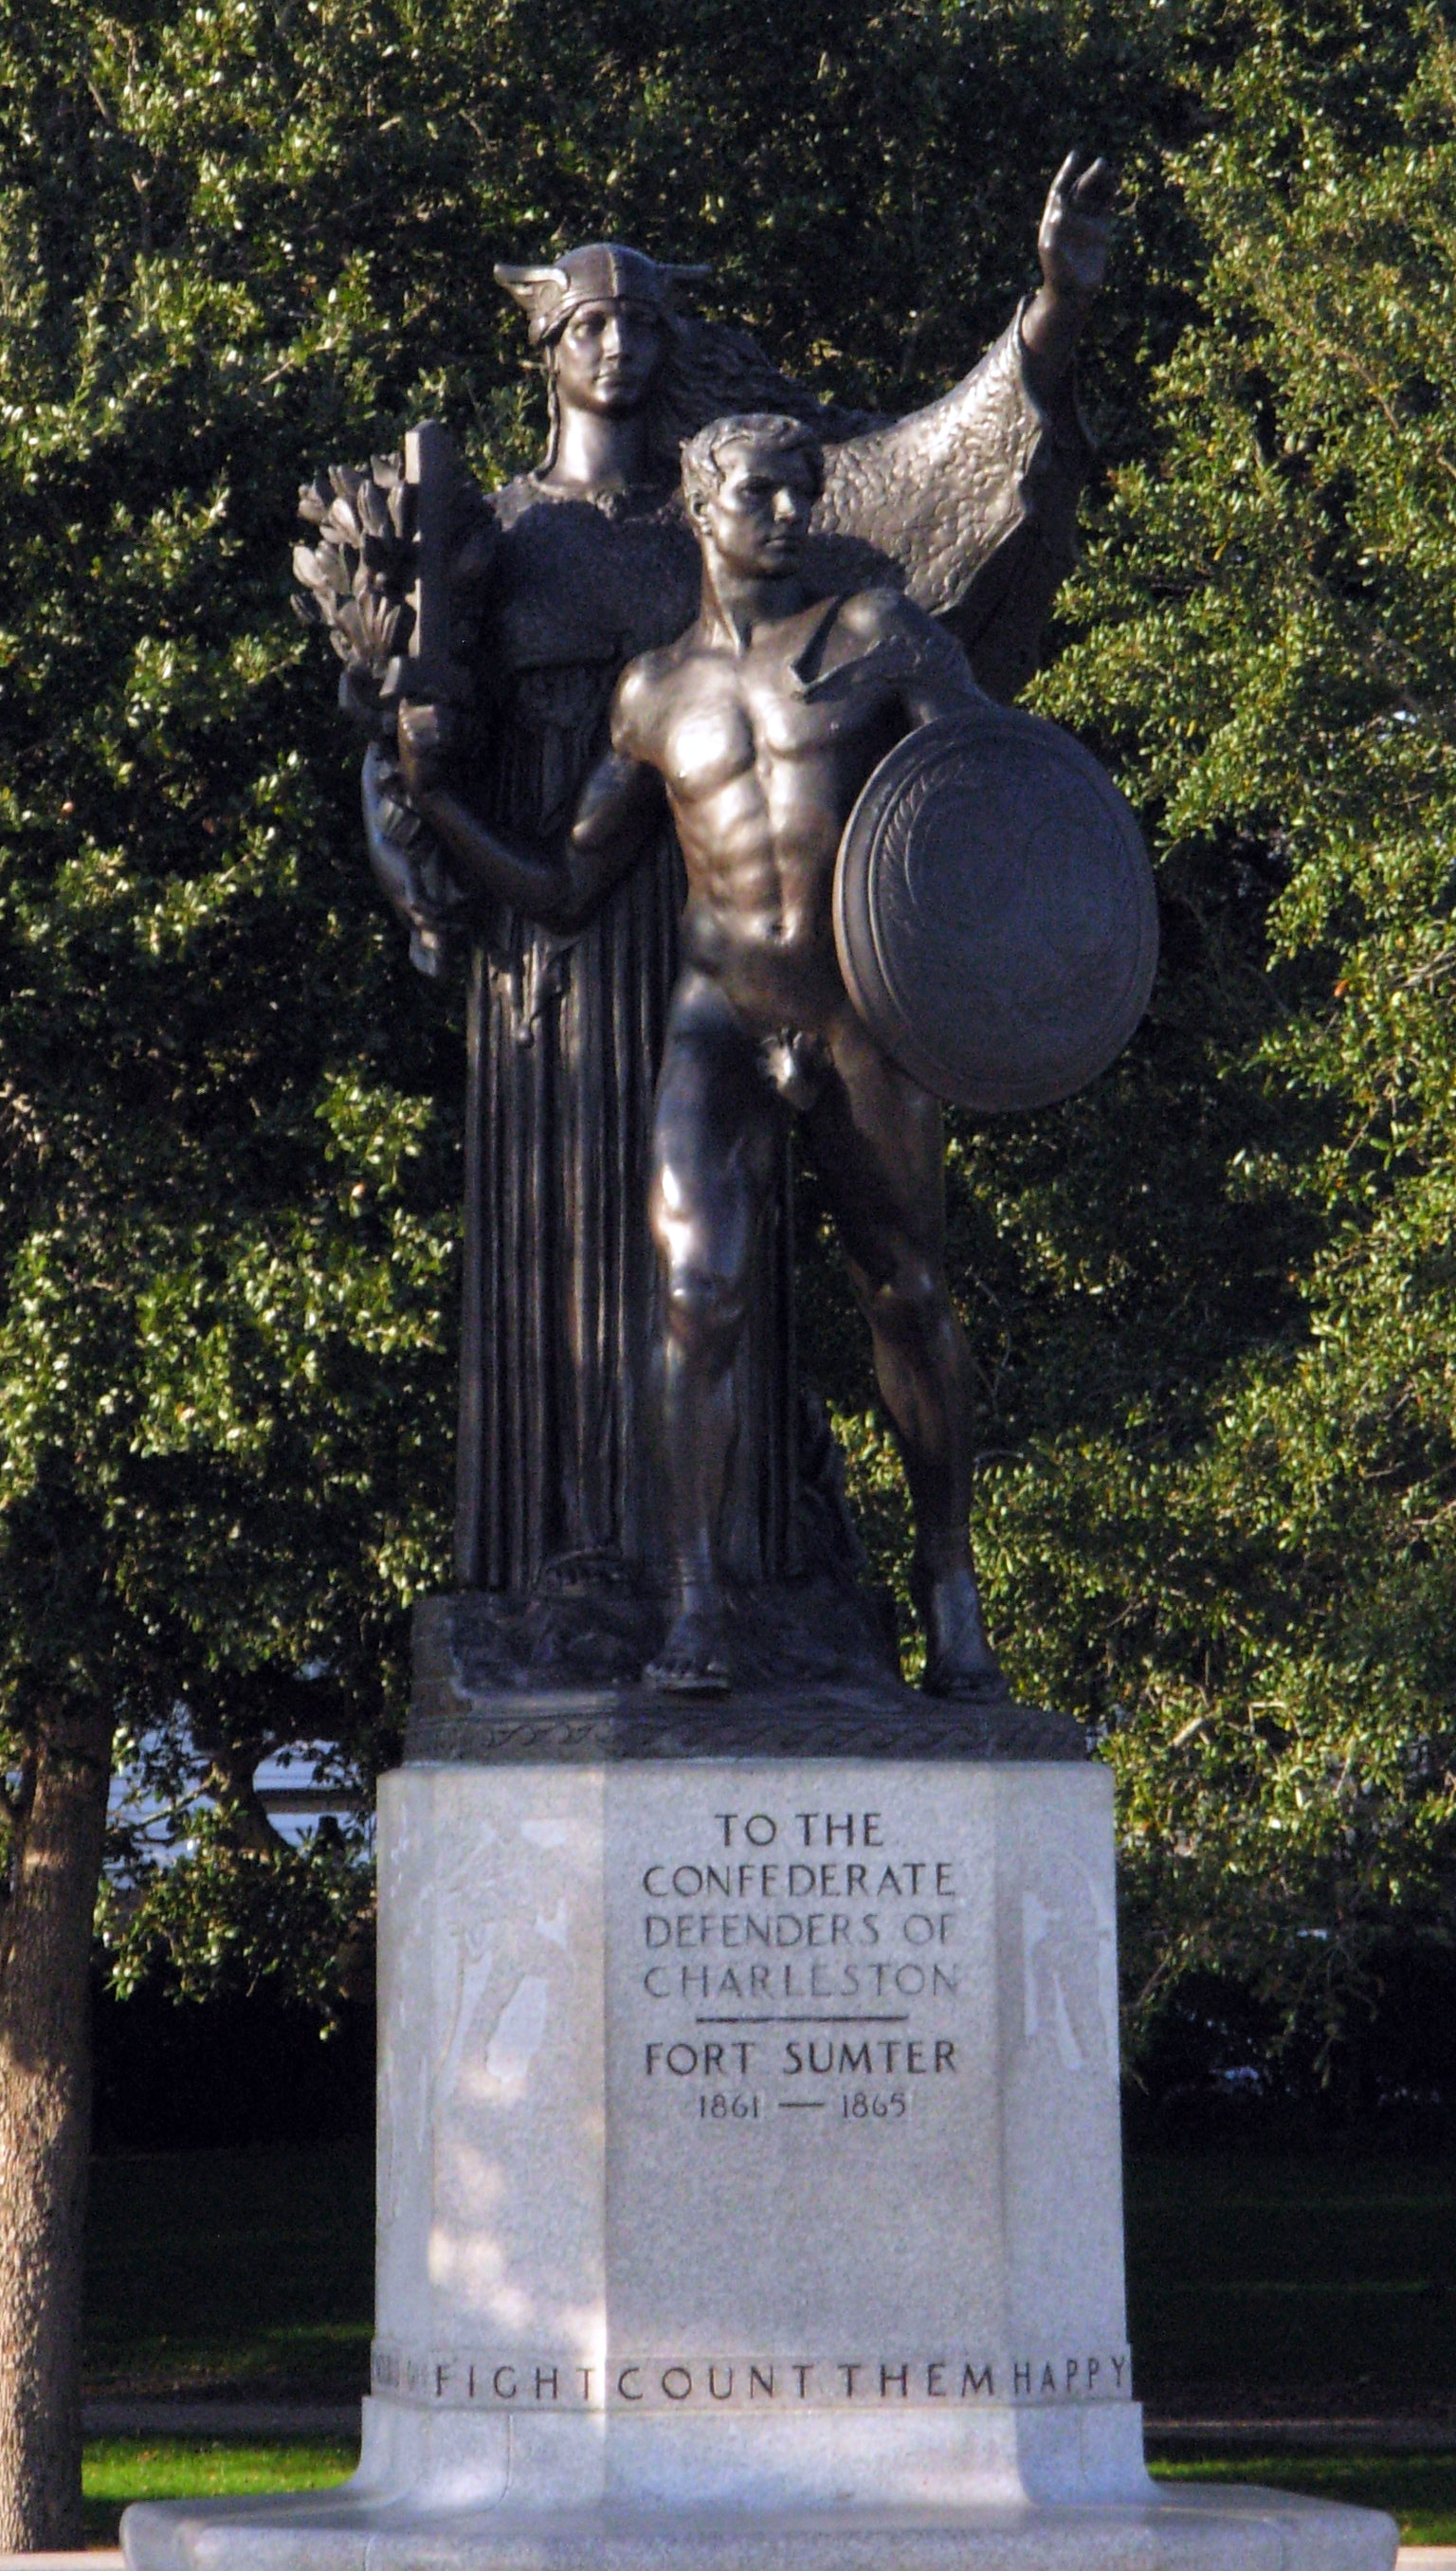 Confesderate monument haunted White Point Gardens Battery Charleston South Carolina pirate executions Stede Bonnet 1718 Southern ghosts